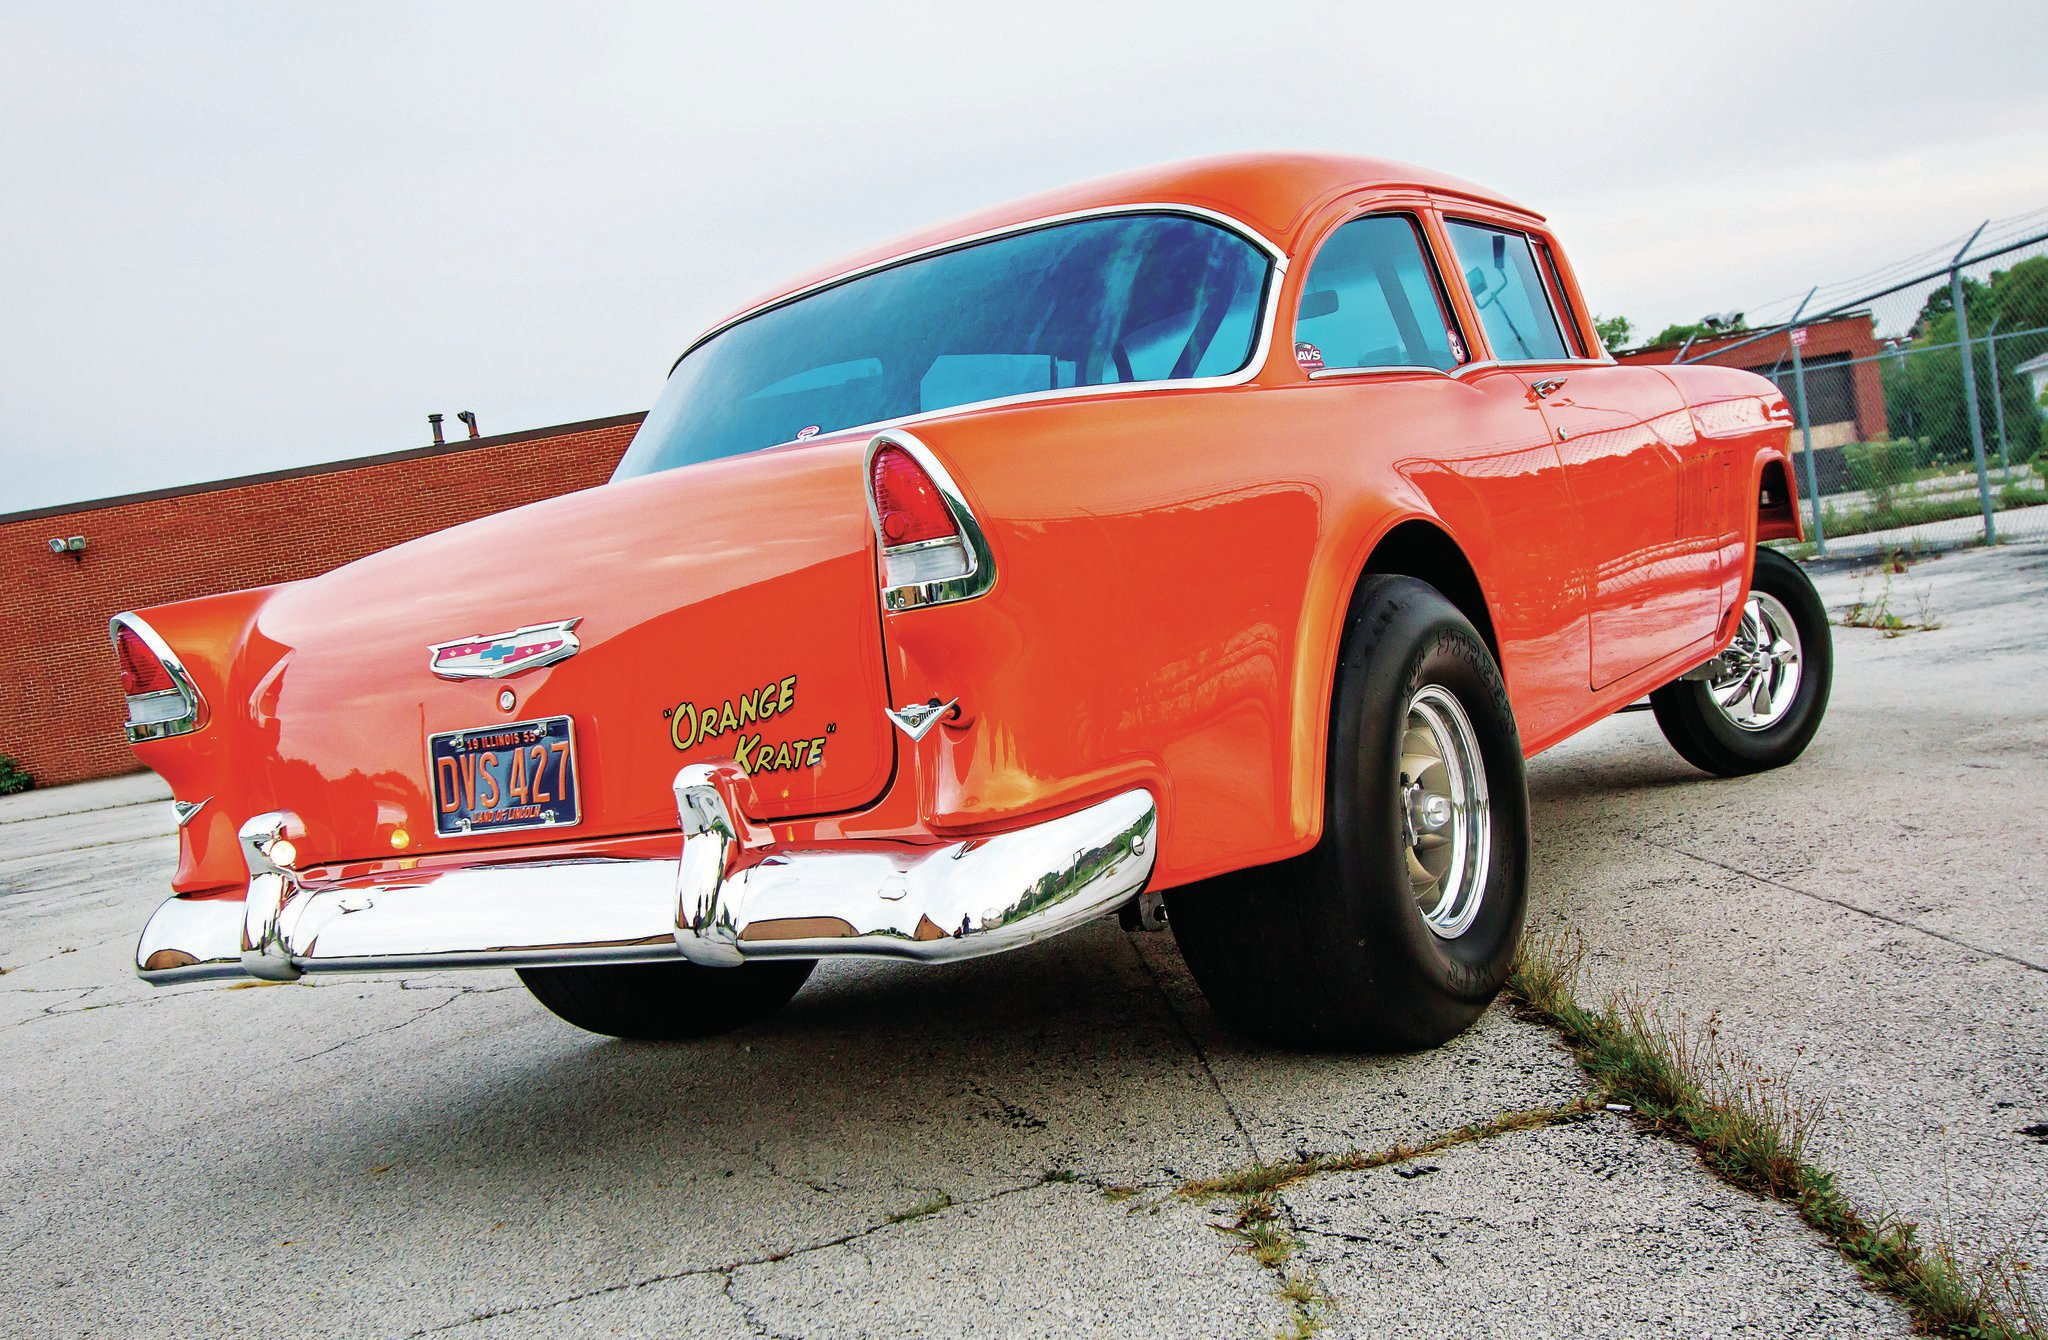 The classic 1955 Chevy sedan rear is highlighted by radiused wheel openings done some time in the 1960s. ET wheels are reminiscent of the rare gusseted American Torque Thrusts of the mid-1960s. California one-piece bumpers and blue-tint windows harken back to the West Coast gasser wars.